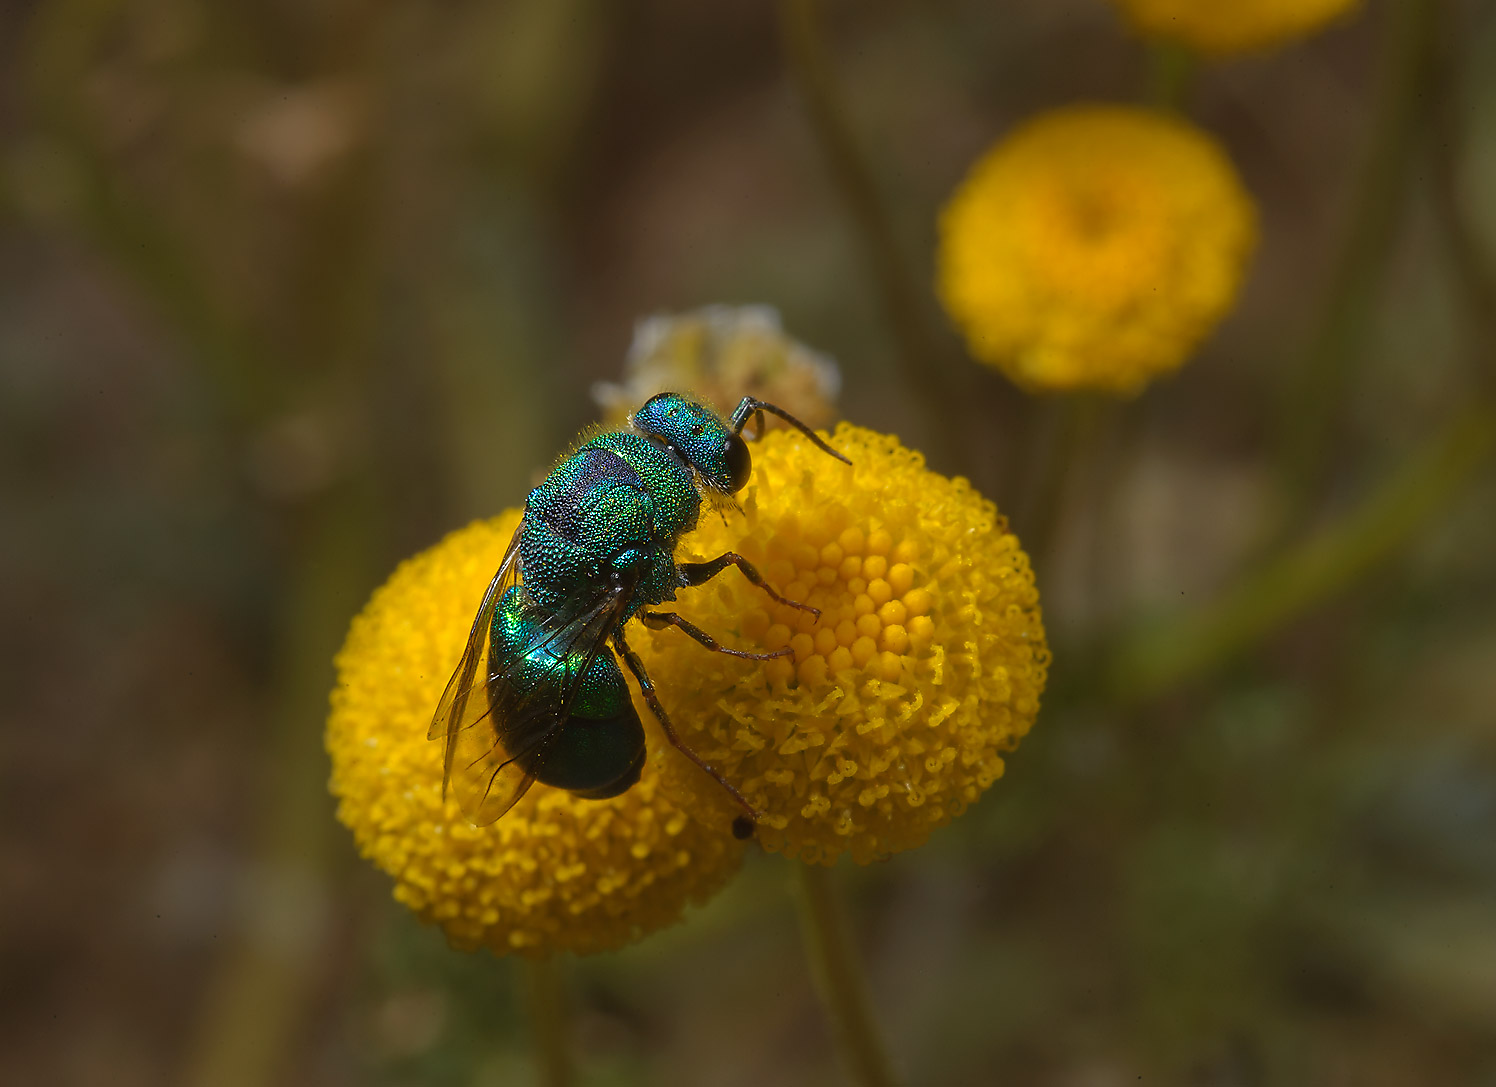 Green Metallic Bee (Agapostemon) on yellow...of Ras Laffan farms. Northern Qatar